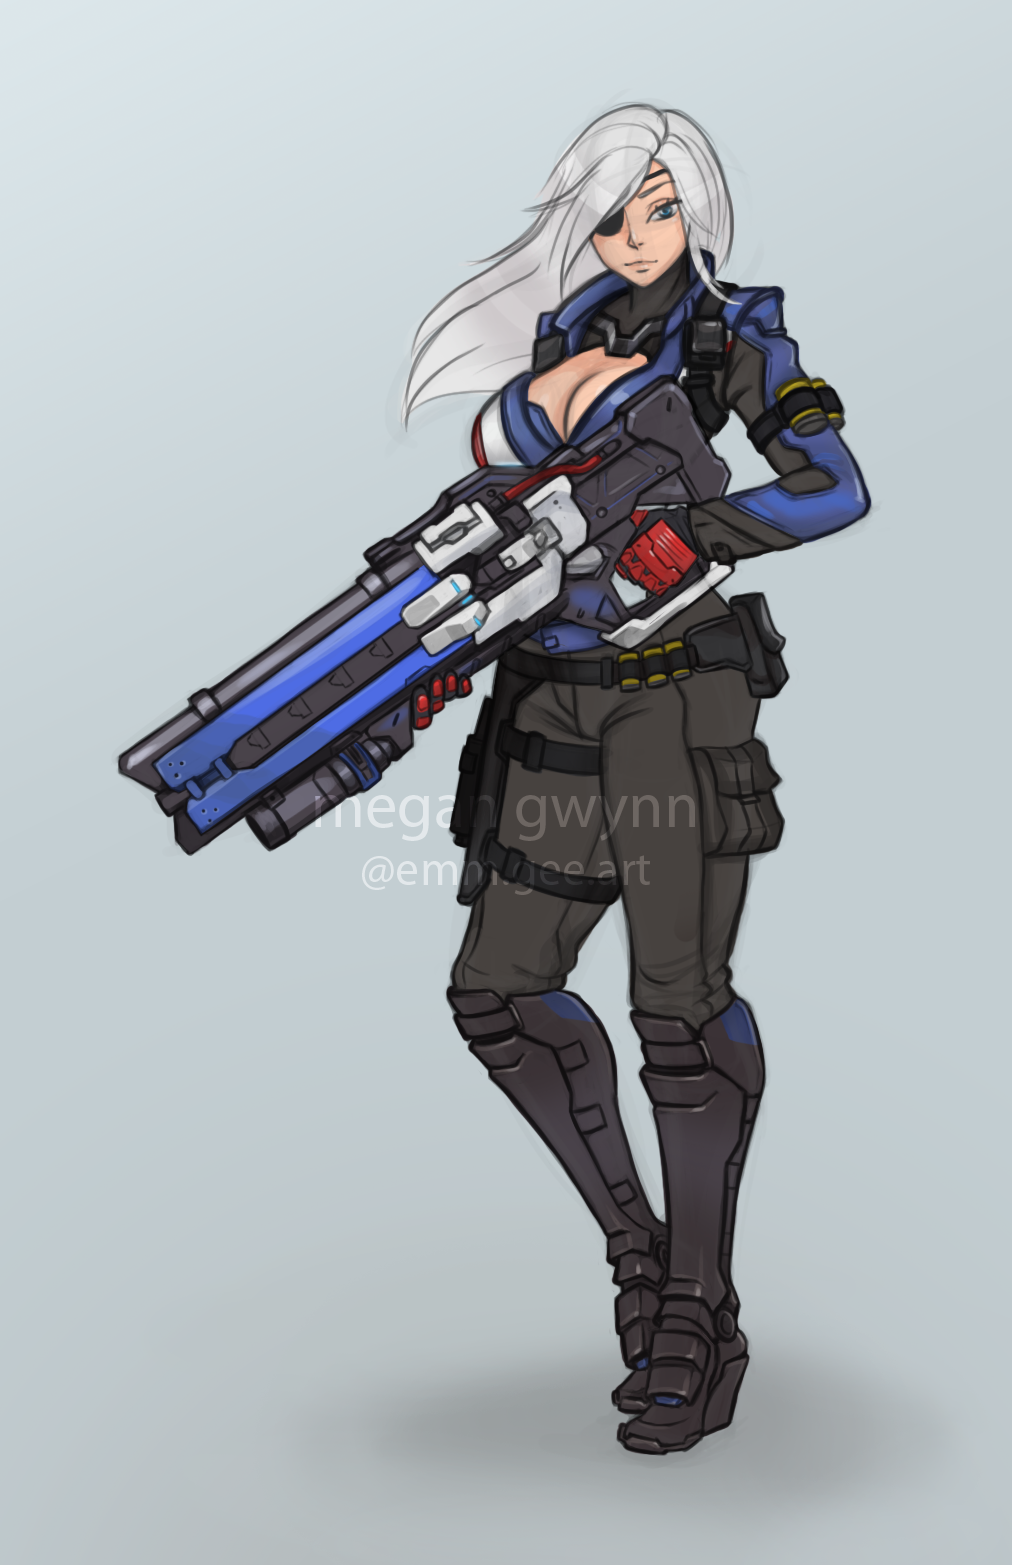 Overwatch Has Developed Quite A Fan Art Following Page 37 Neogaf Overwatch Soldier Soldier 76